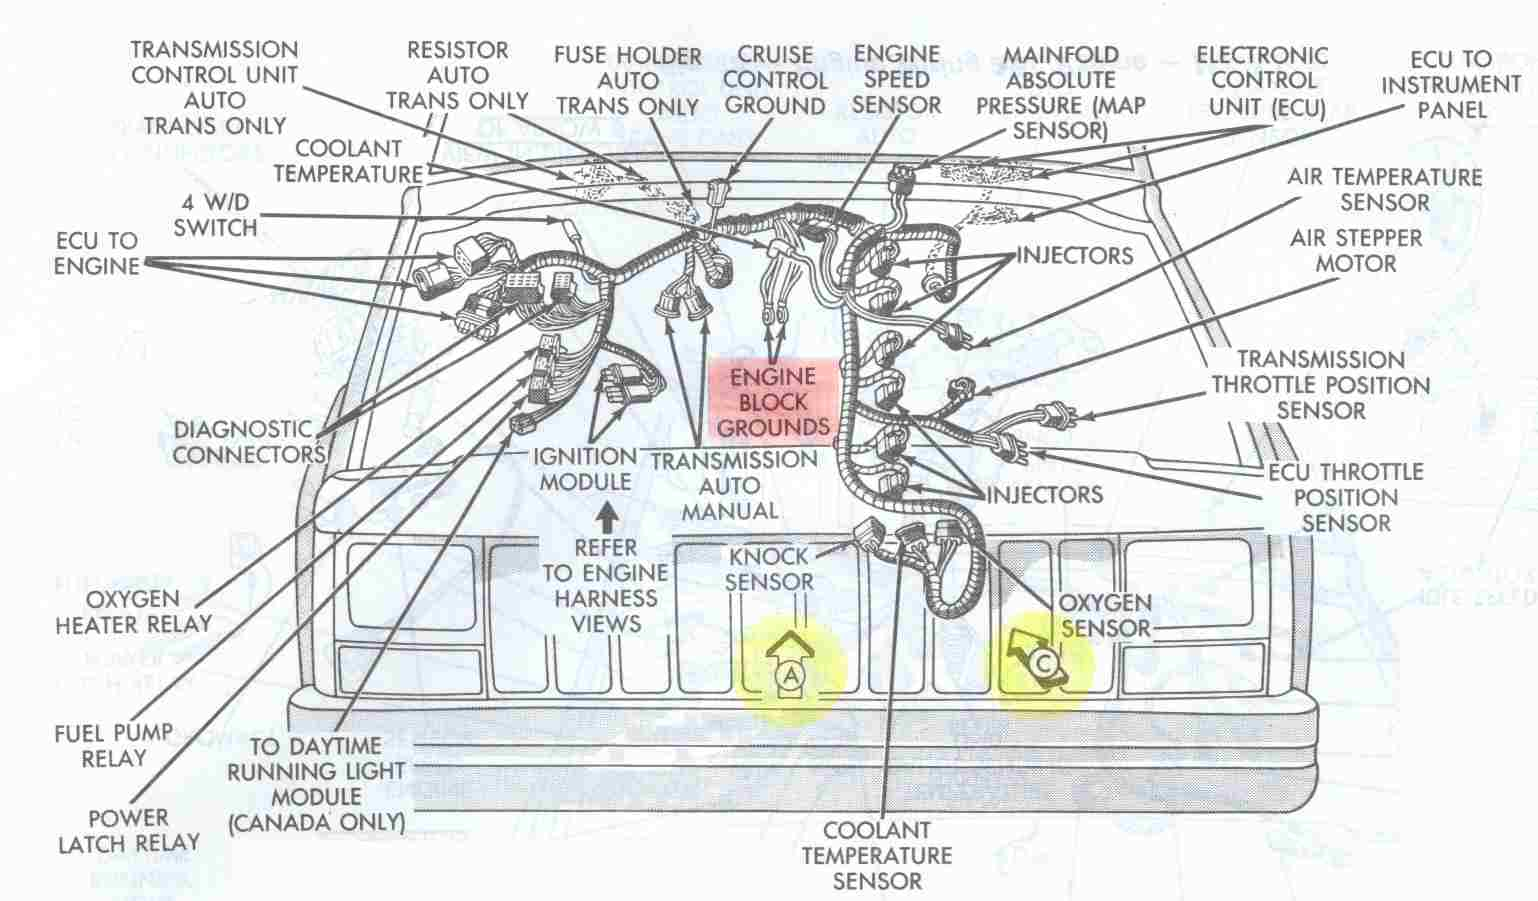 jeep cherokee electrical diagnosing erratic behavior of engine engine bay schematic showing major electrical ground points for 4 0l jeep cherokee engines